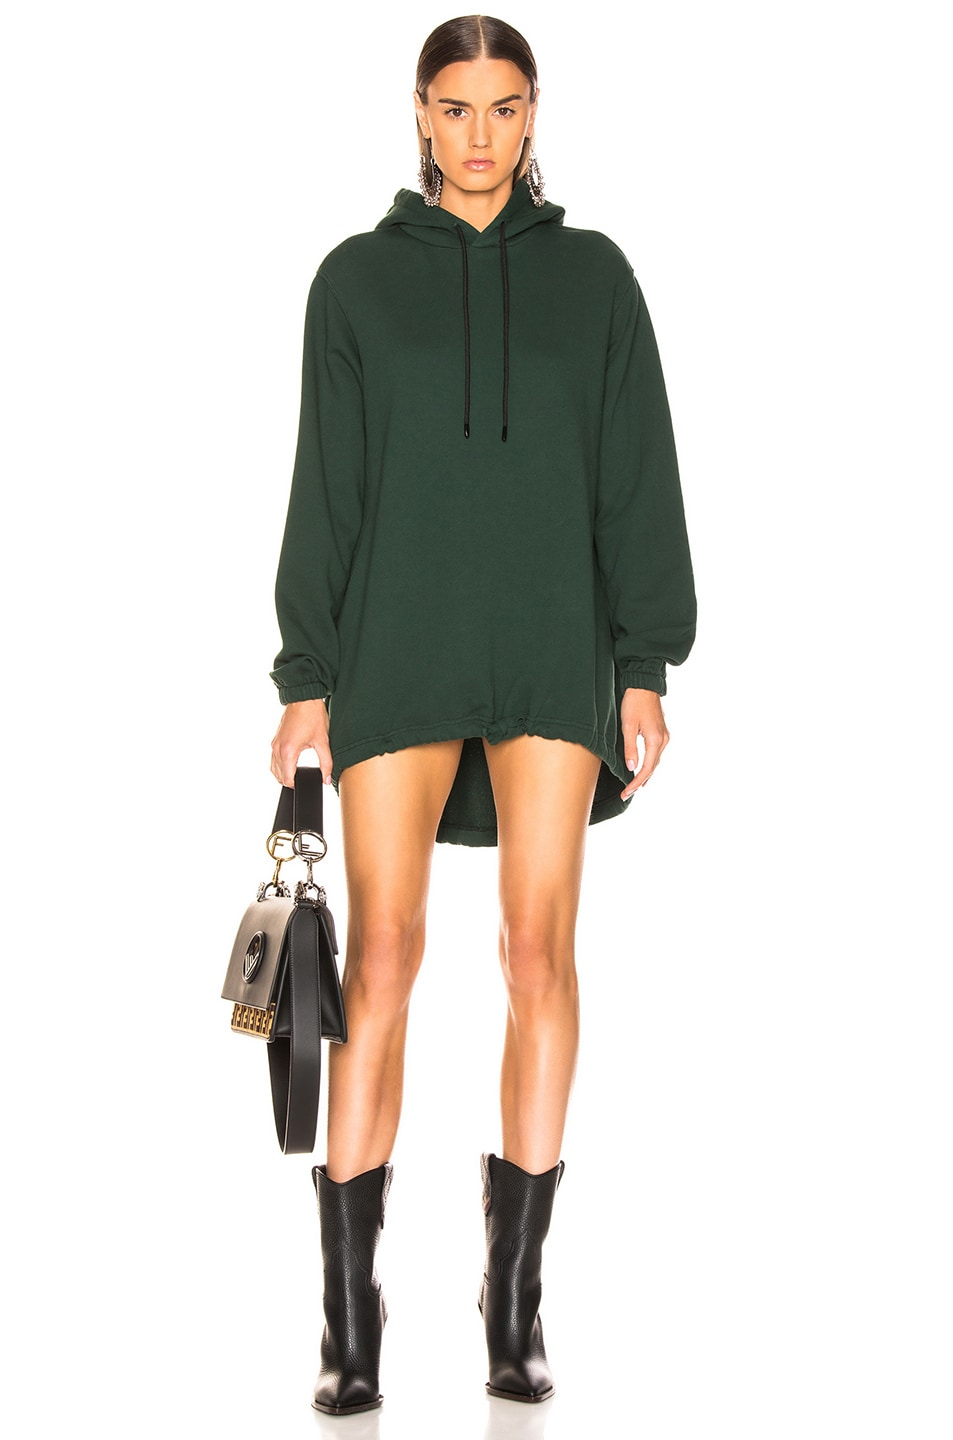 Image 1 of COTTON CITIZEN Milan Hoodie Dress in Battle Green